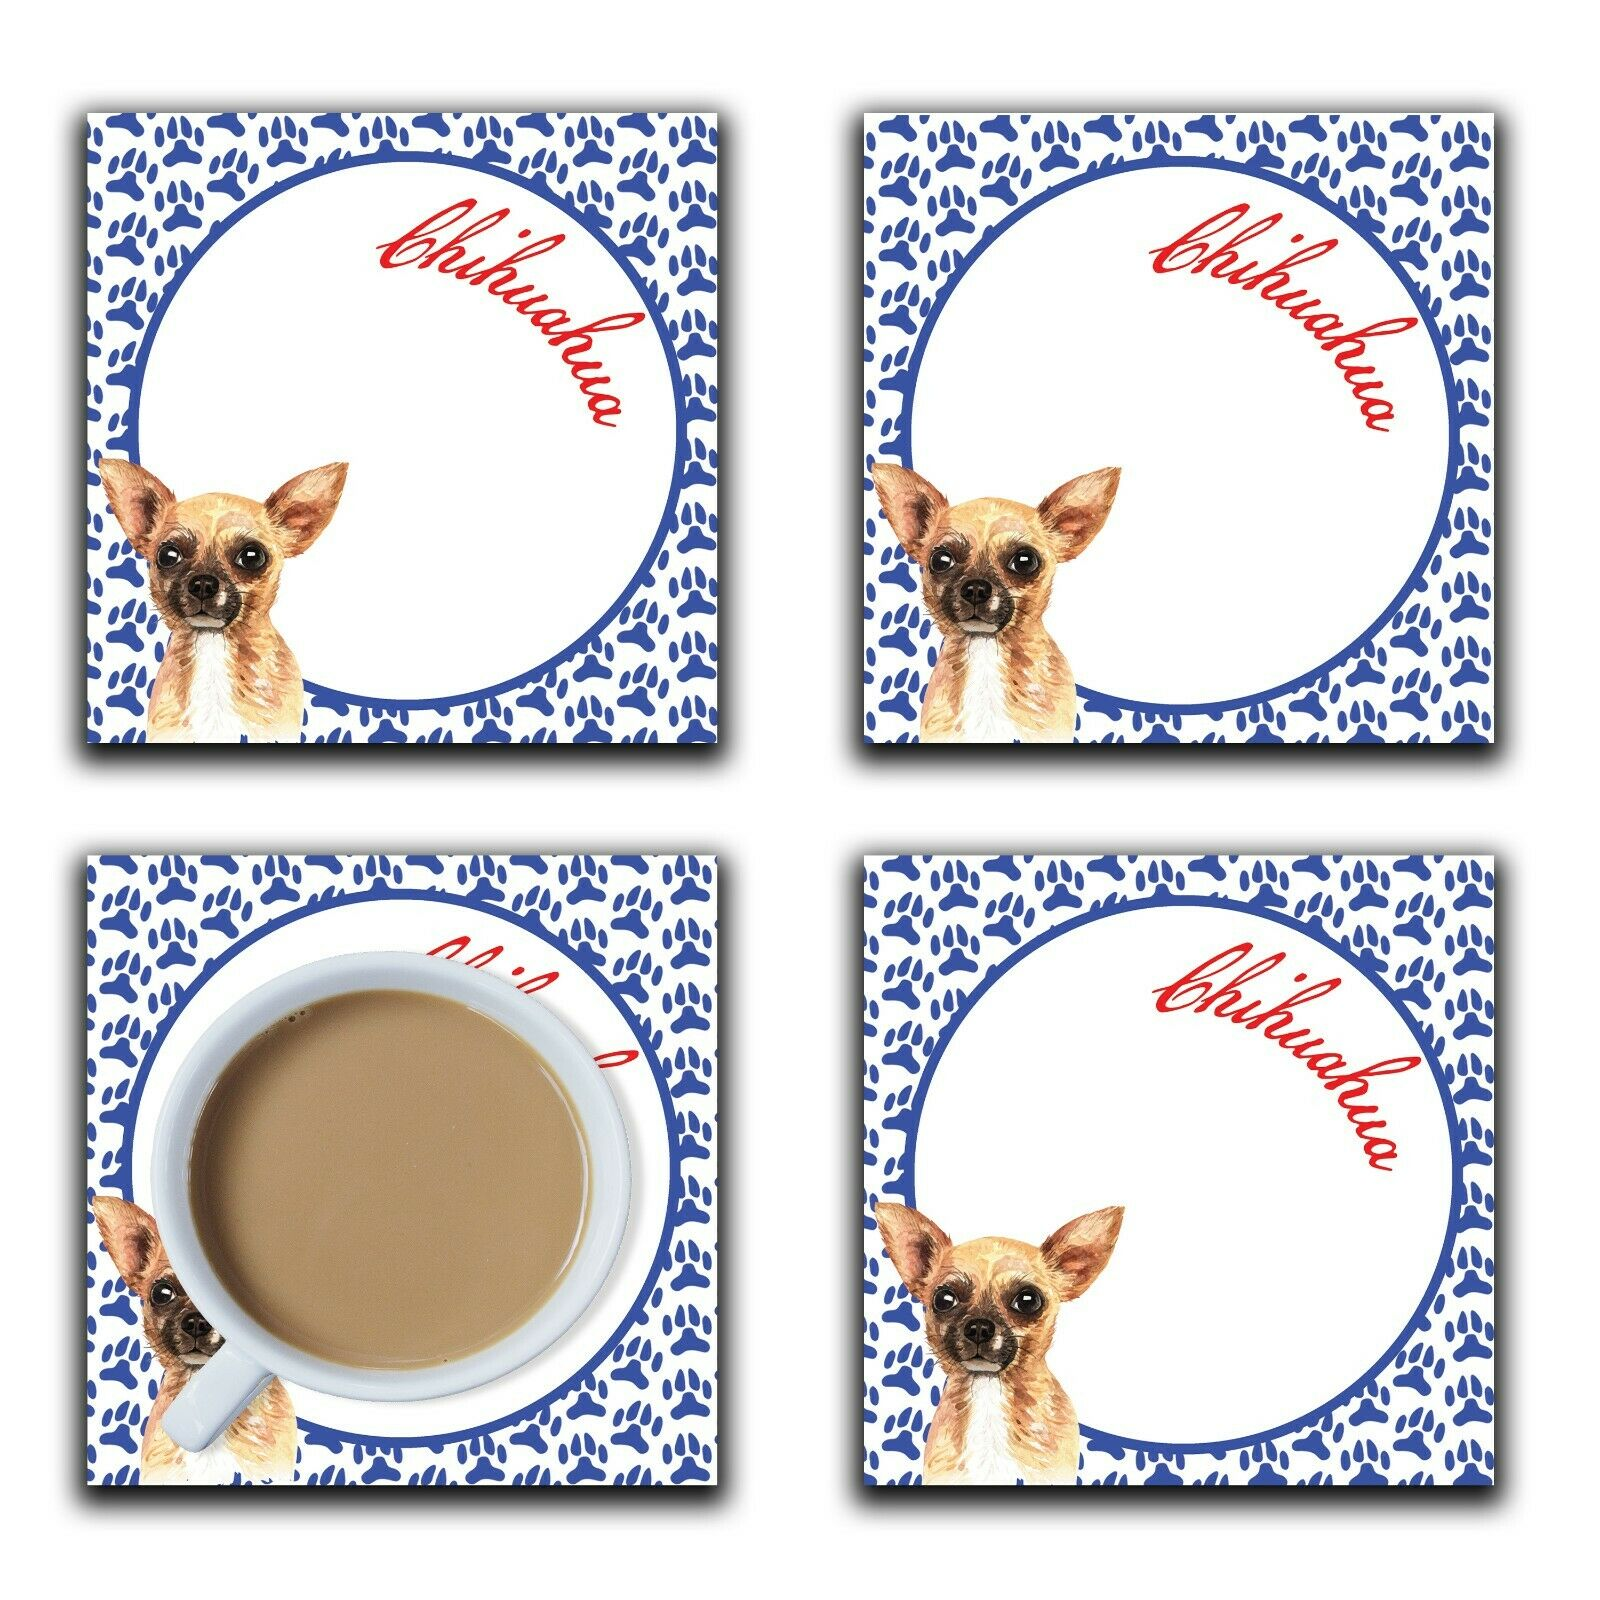 Embossi Printed Chihuahua, wood or ceramic tile, set of 4 Dog Coasters